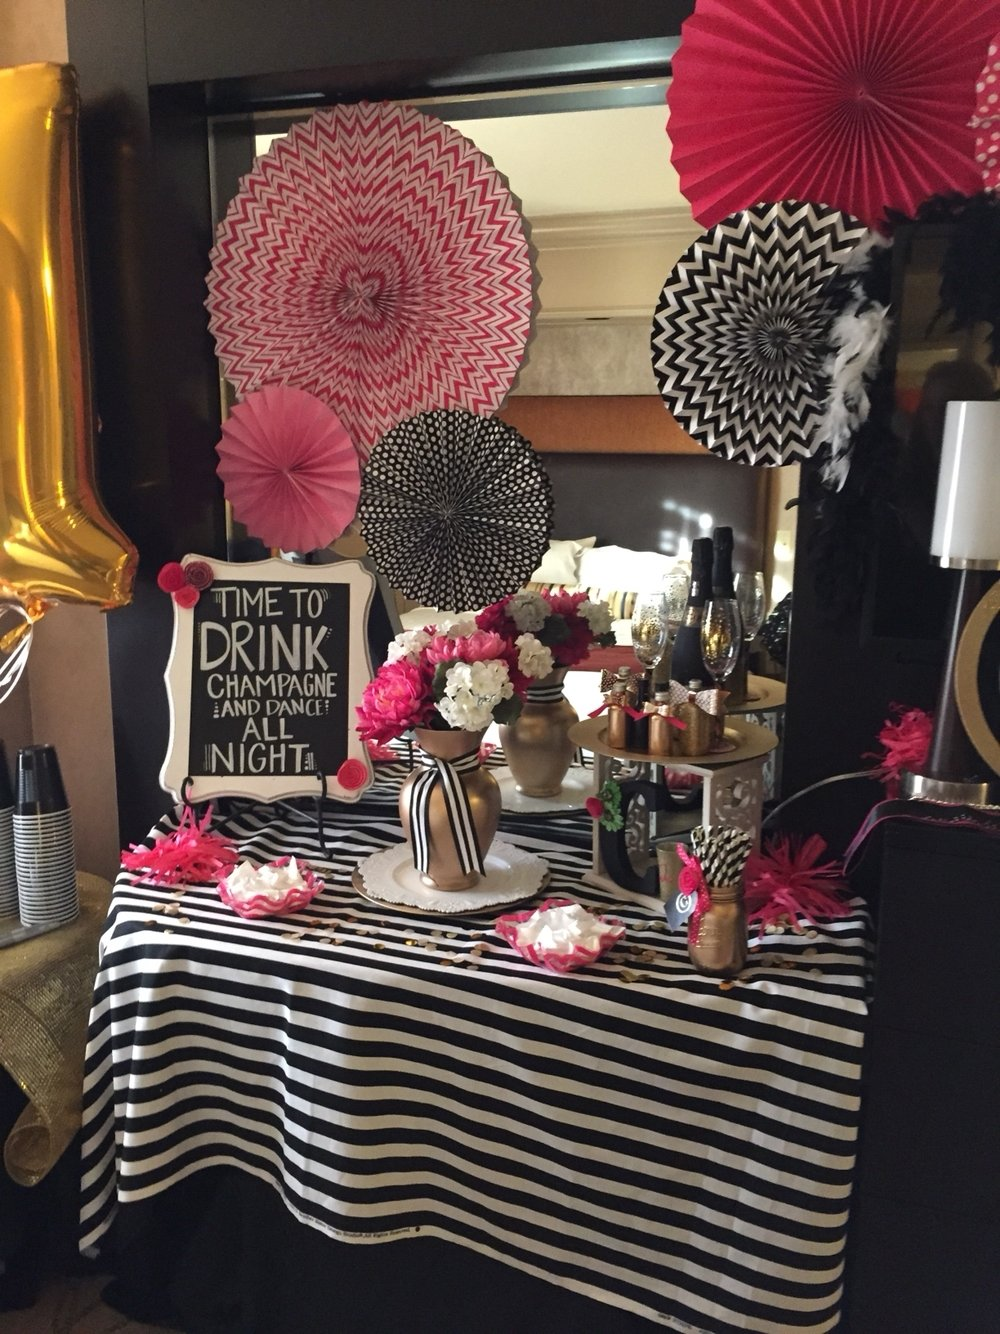 10 Attractive Hotel Party Ideas For Adults kate spade inspired 21st birthday decorations in vegas hotel room 2020